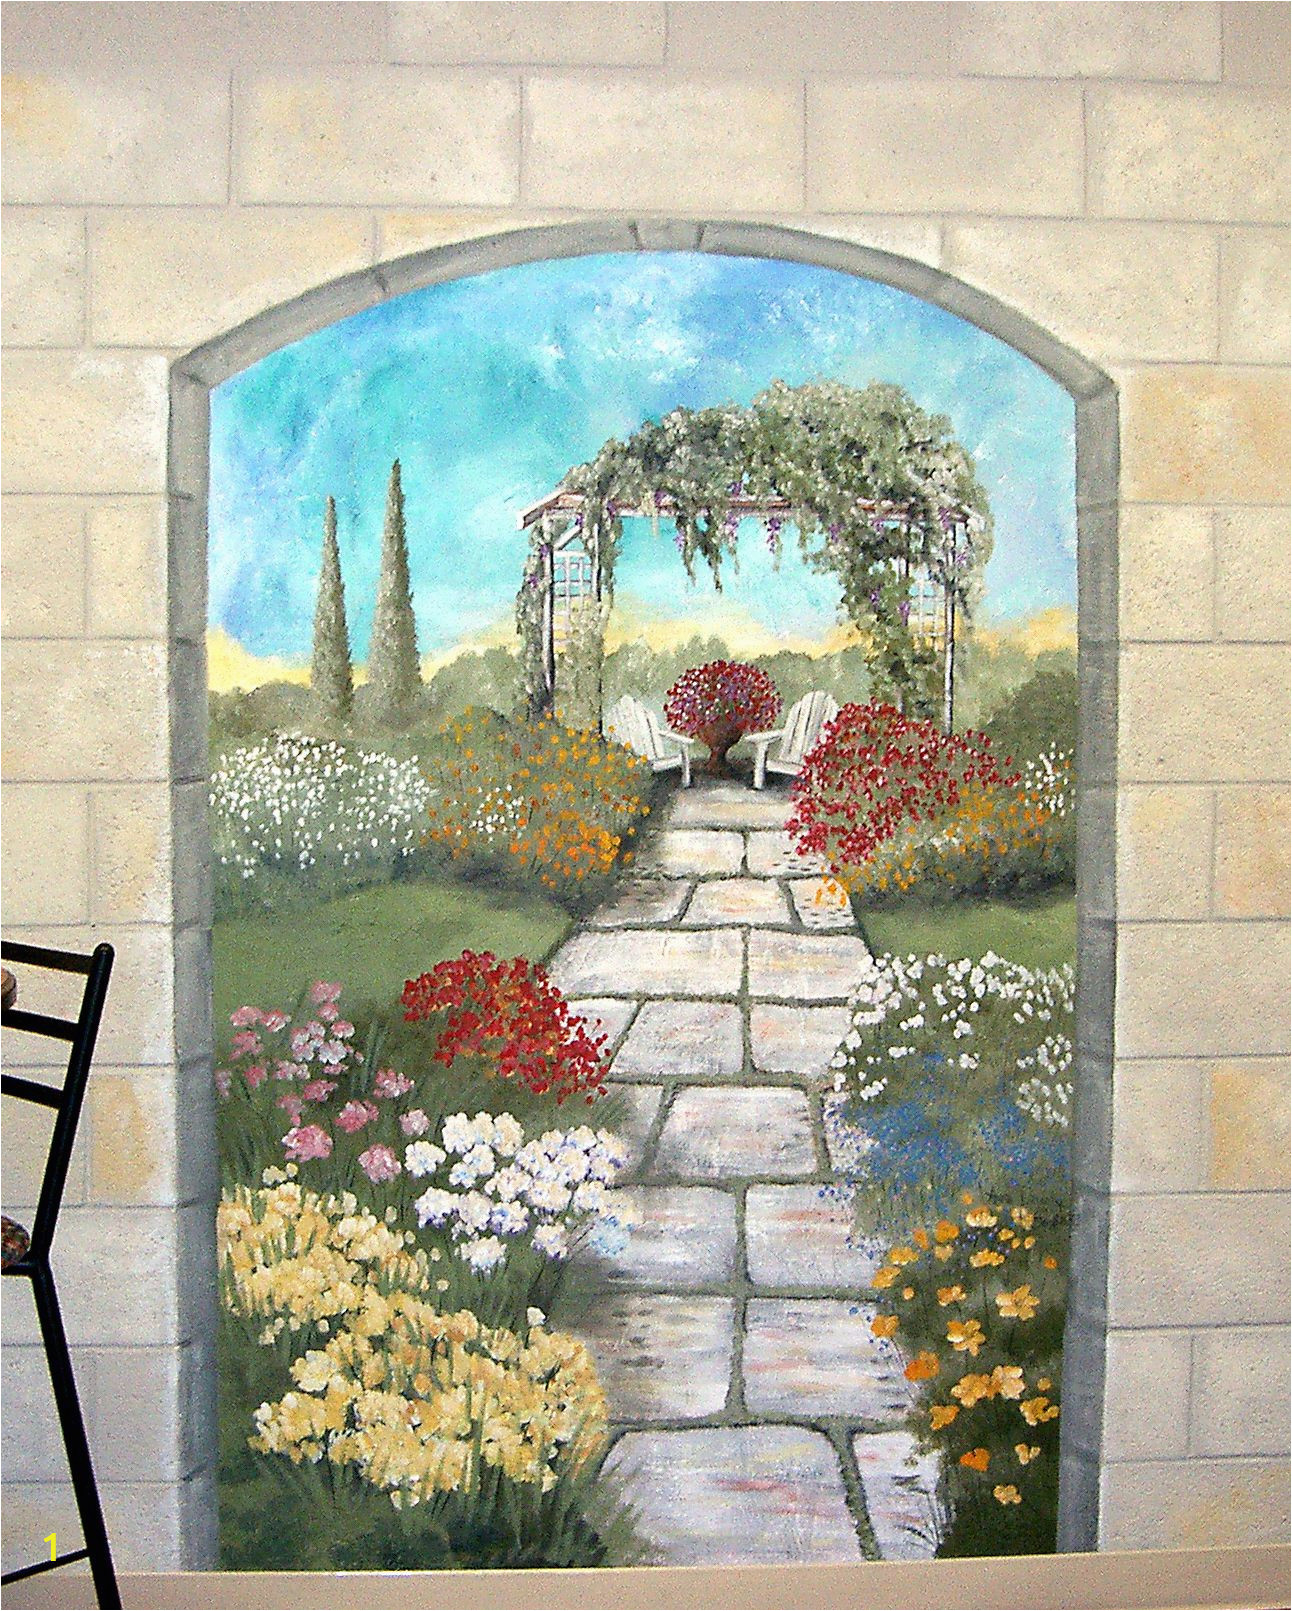 How to Paint A Mural On A Concrete Wall Garden Mural On A Cement Block Wall Colorful Flower Garden